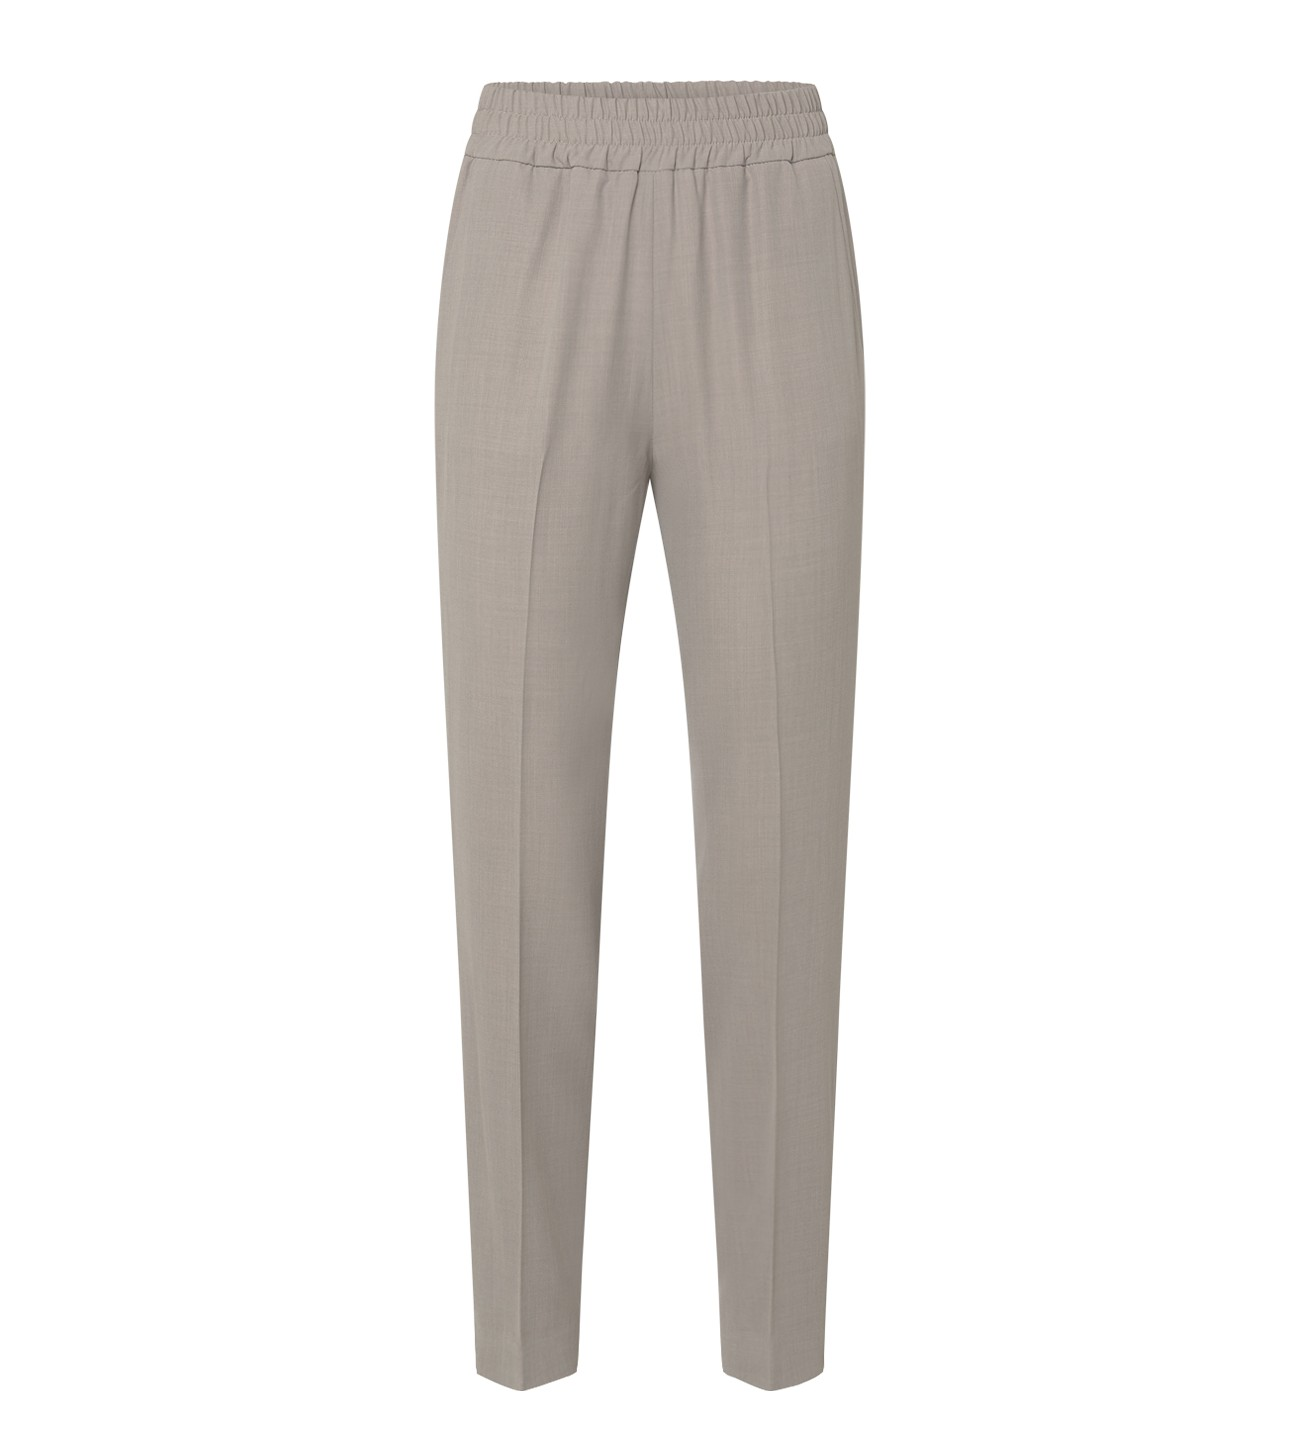 FABIANA_FILIPPI_TROUSERS_WITH_WIDE_ELASTIC_WAISTBAND_AND_SIDE_POCKETS_MARIONA_FASHION_CLOTHING_WOMAN_SHOP_ONLINE_PAD260W890